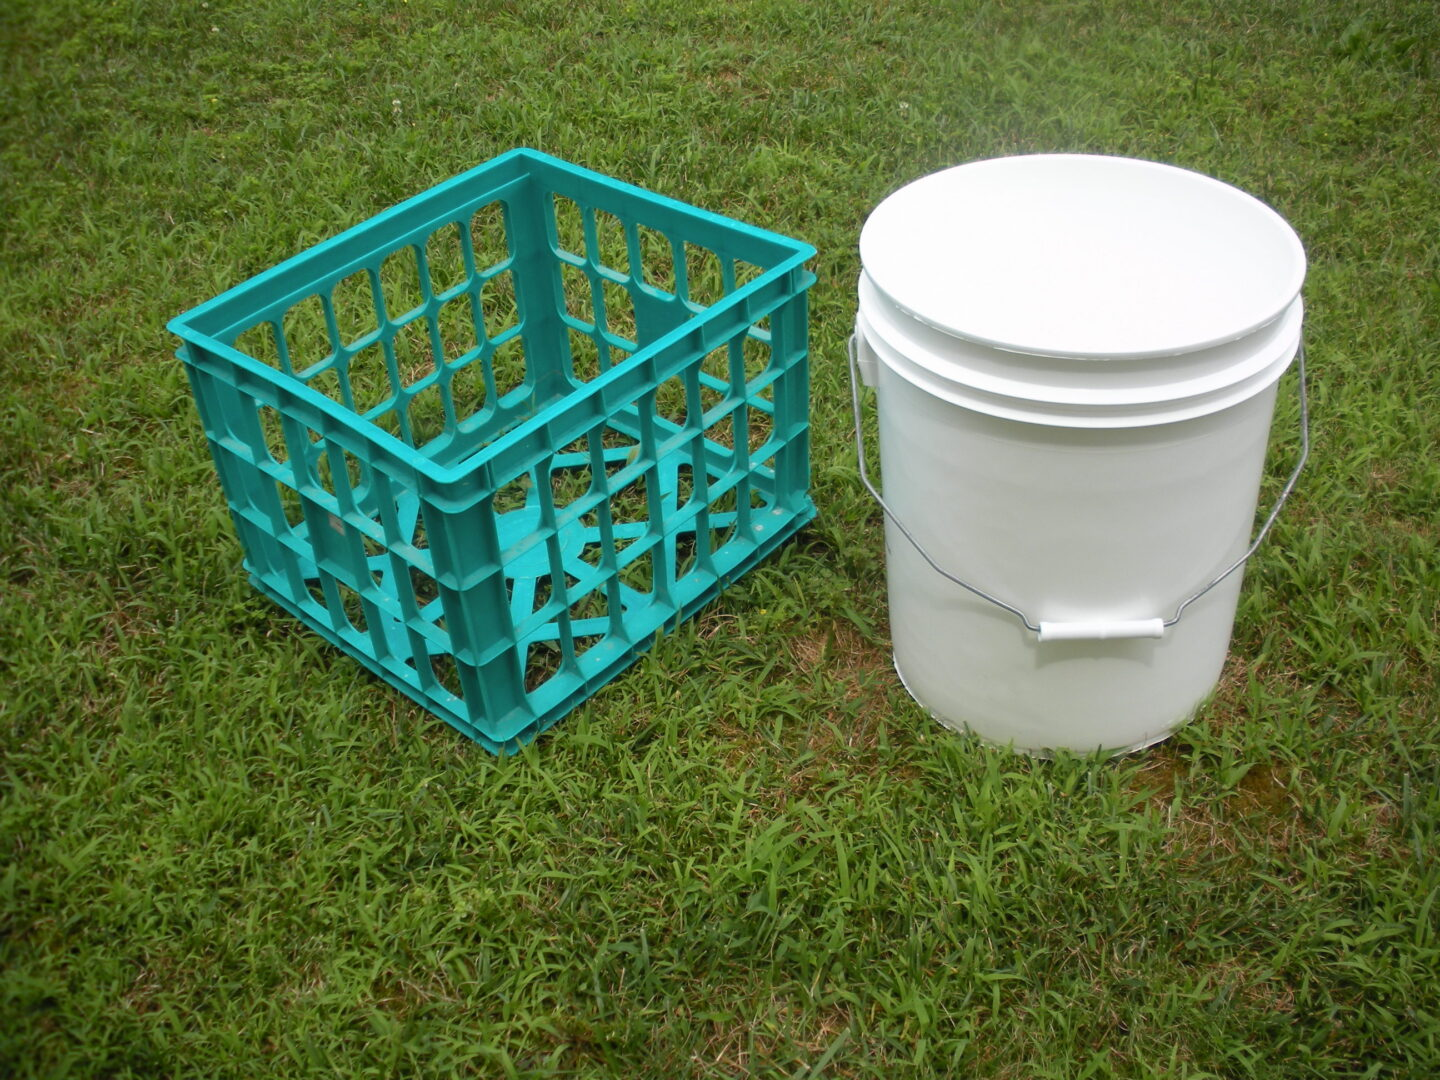 milk crate and 5 gallon bucket